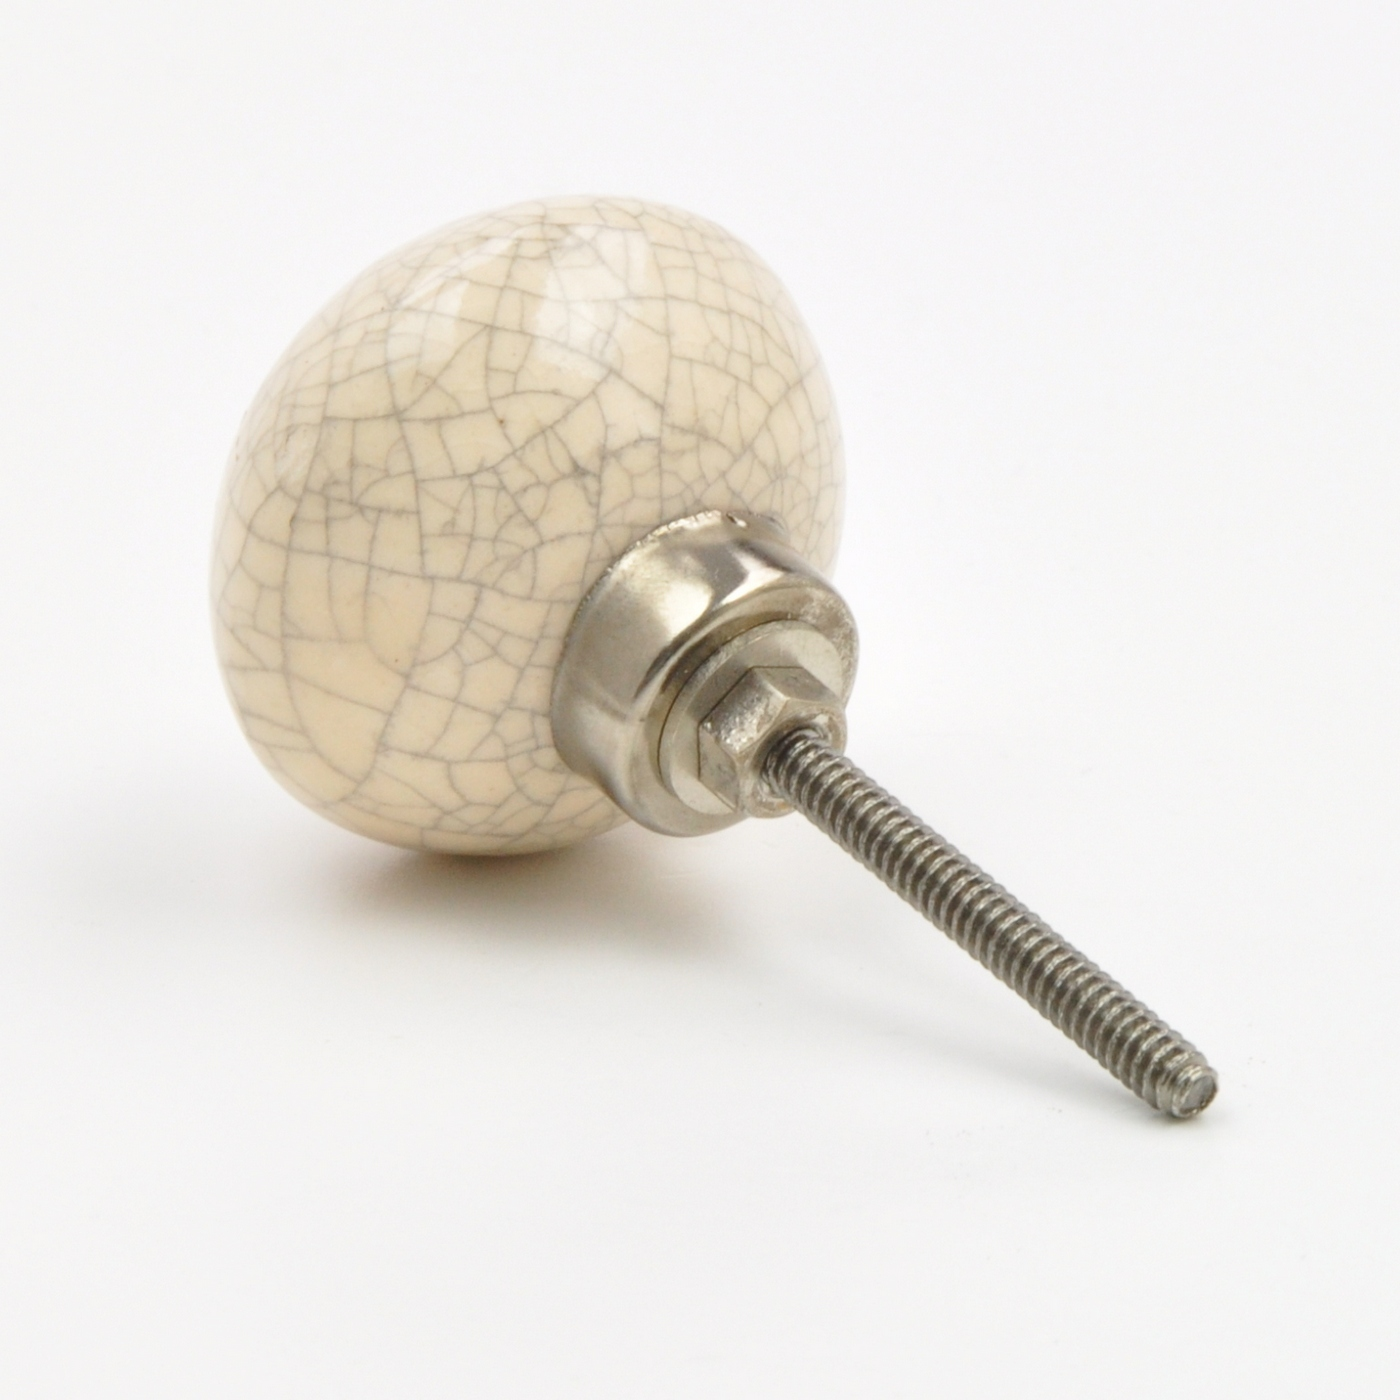 Round-Ball-Shape-Shaped-Knob-Pull-Handle-for-Cupboards-Doors-Cabinets-Draw Indexbild 40